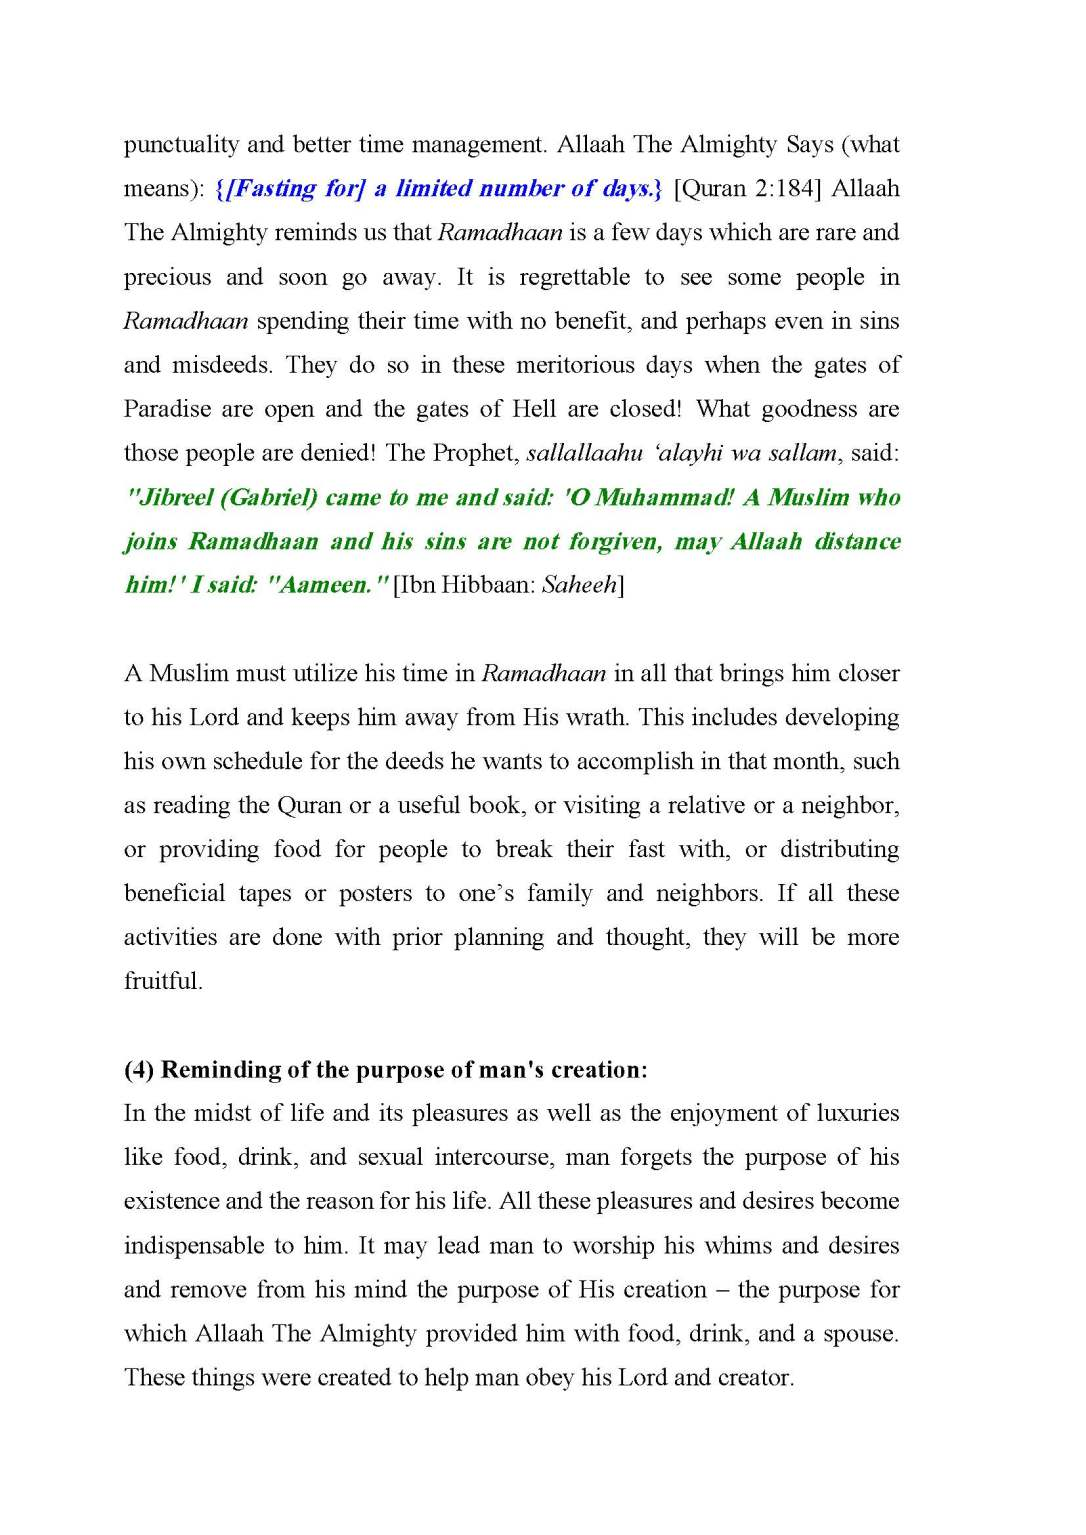 Benefits_and_Secrets_of_Fasting_Page_14